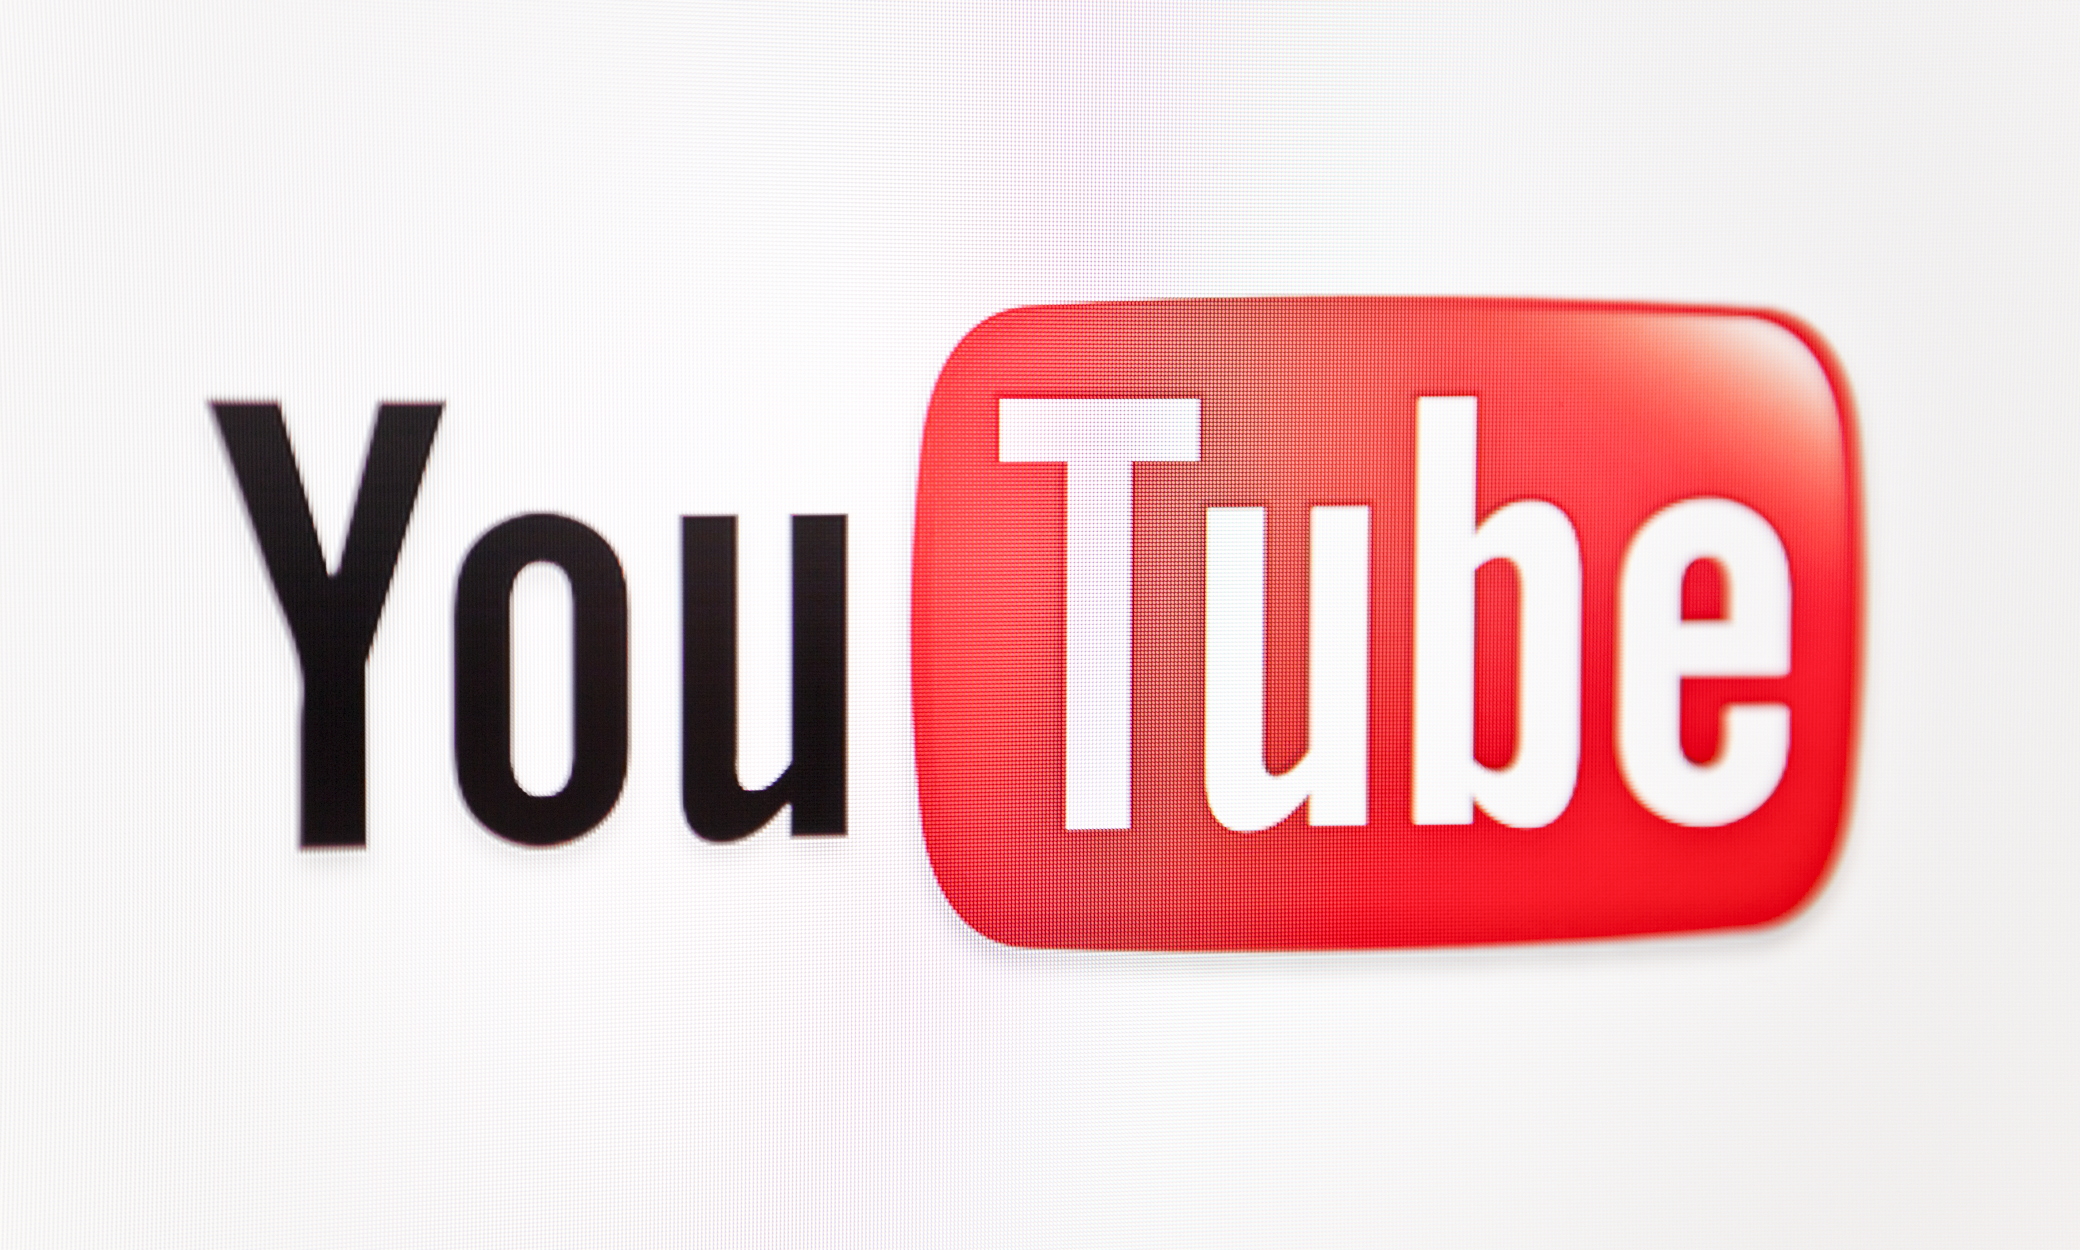 Meas, Arizona, United States - March 16, 2011: A close up photograph of the Youtube logo on a desktop computer screen. Youtube is the largest video sharing website in the world, the image has a shallow depth of field.